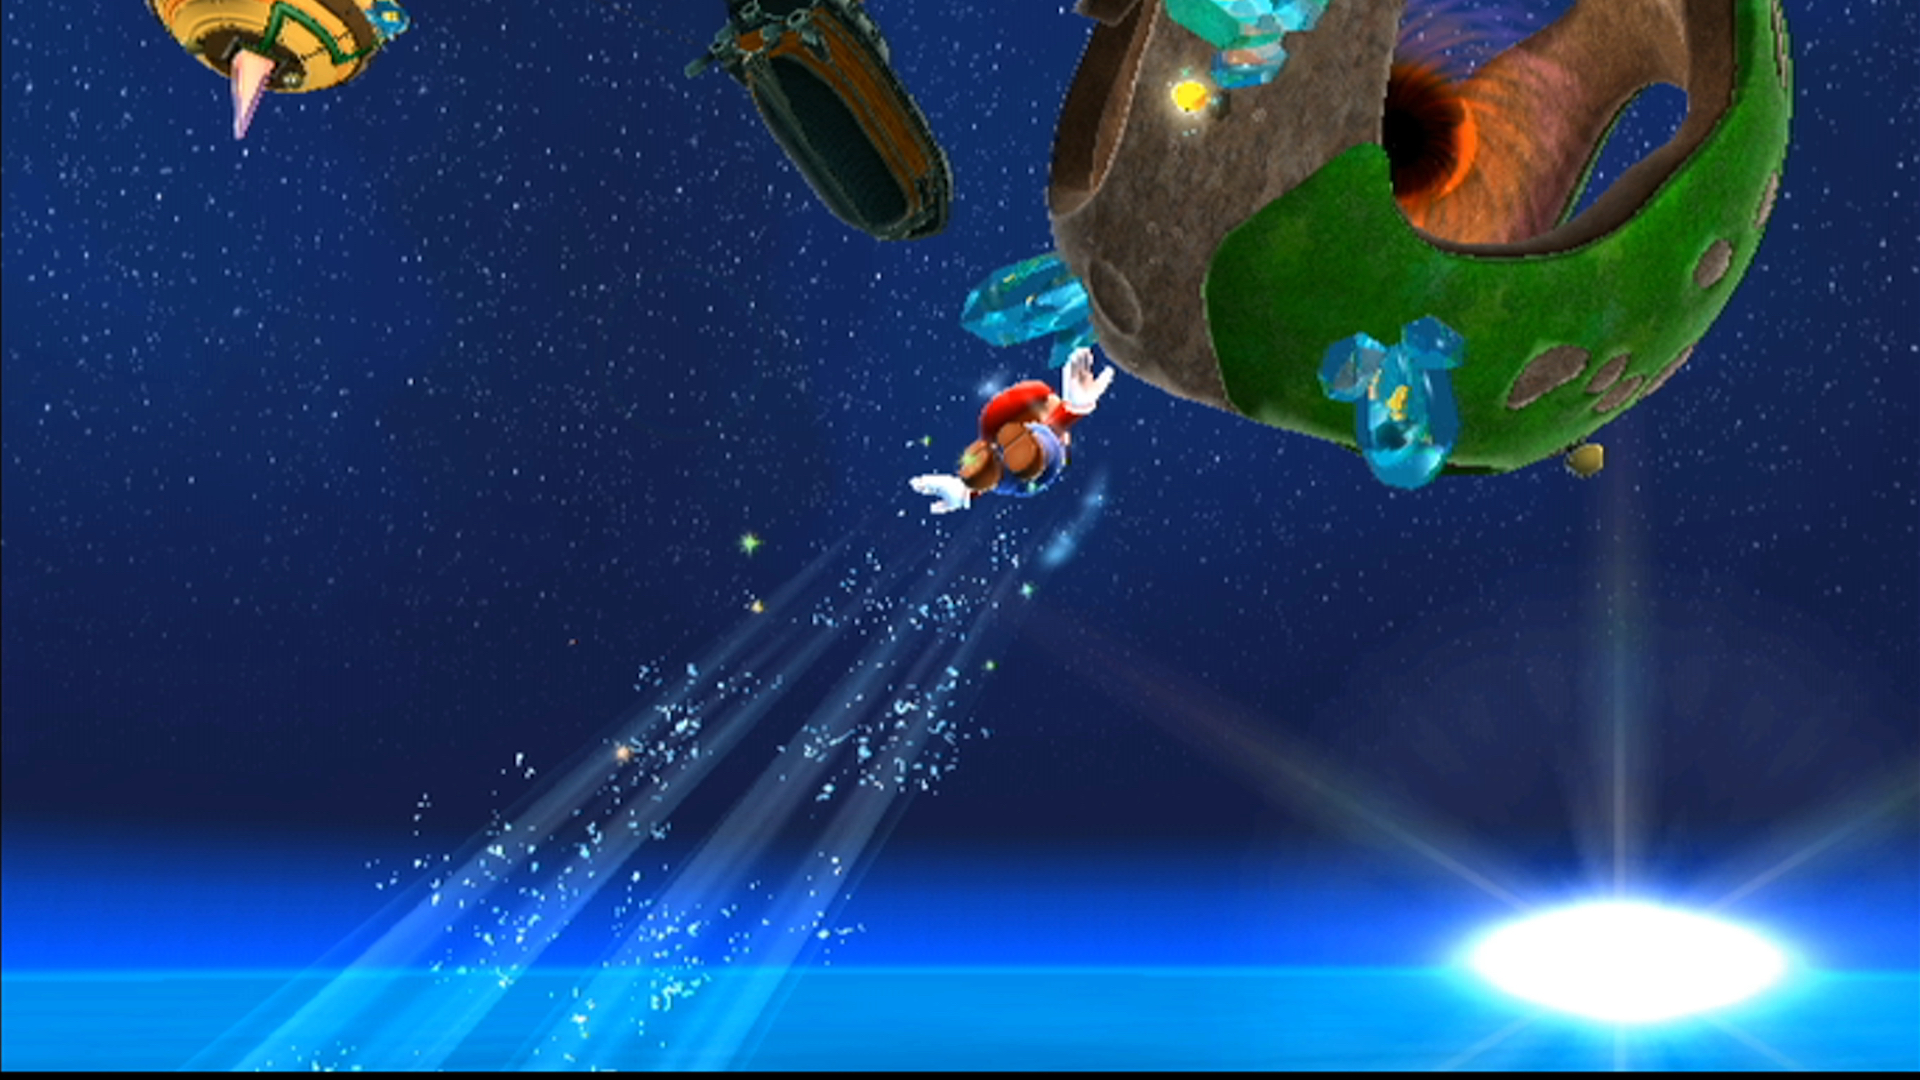 Hands-on with Super Mario Galaxy at 1080p on Nintendo's official Wii